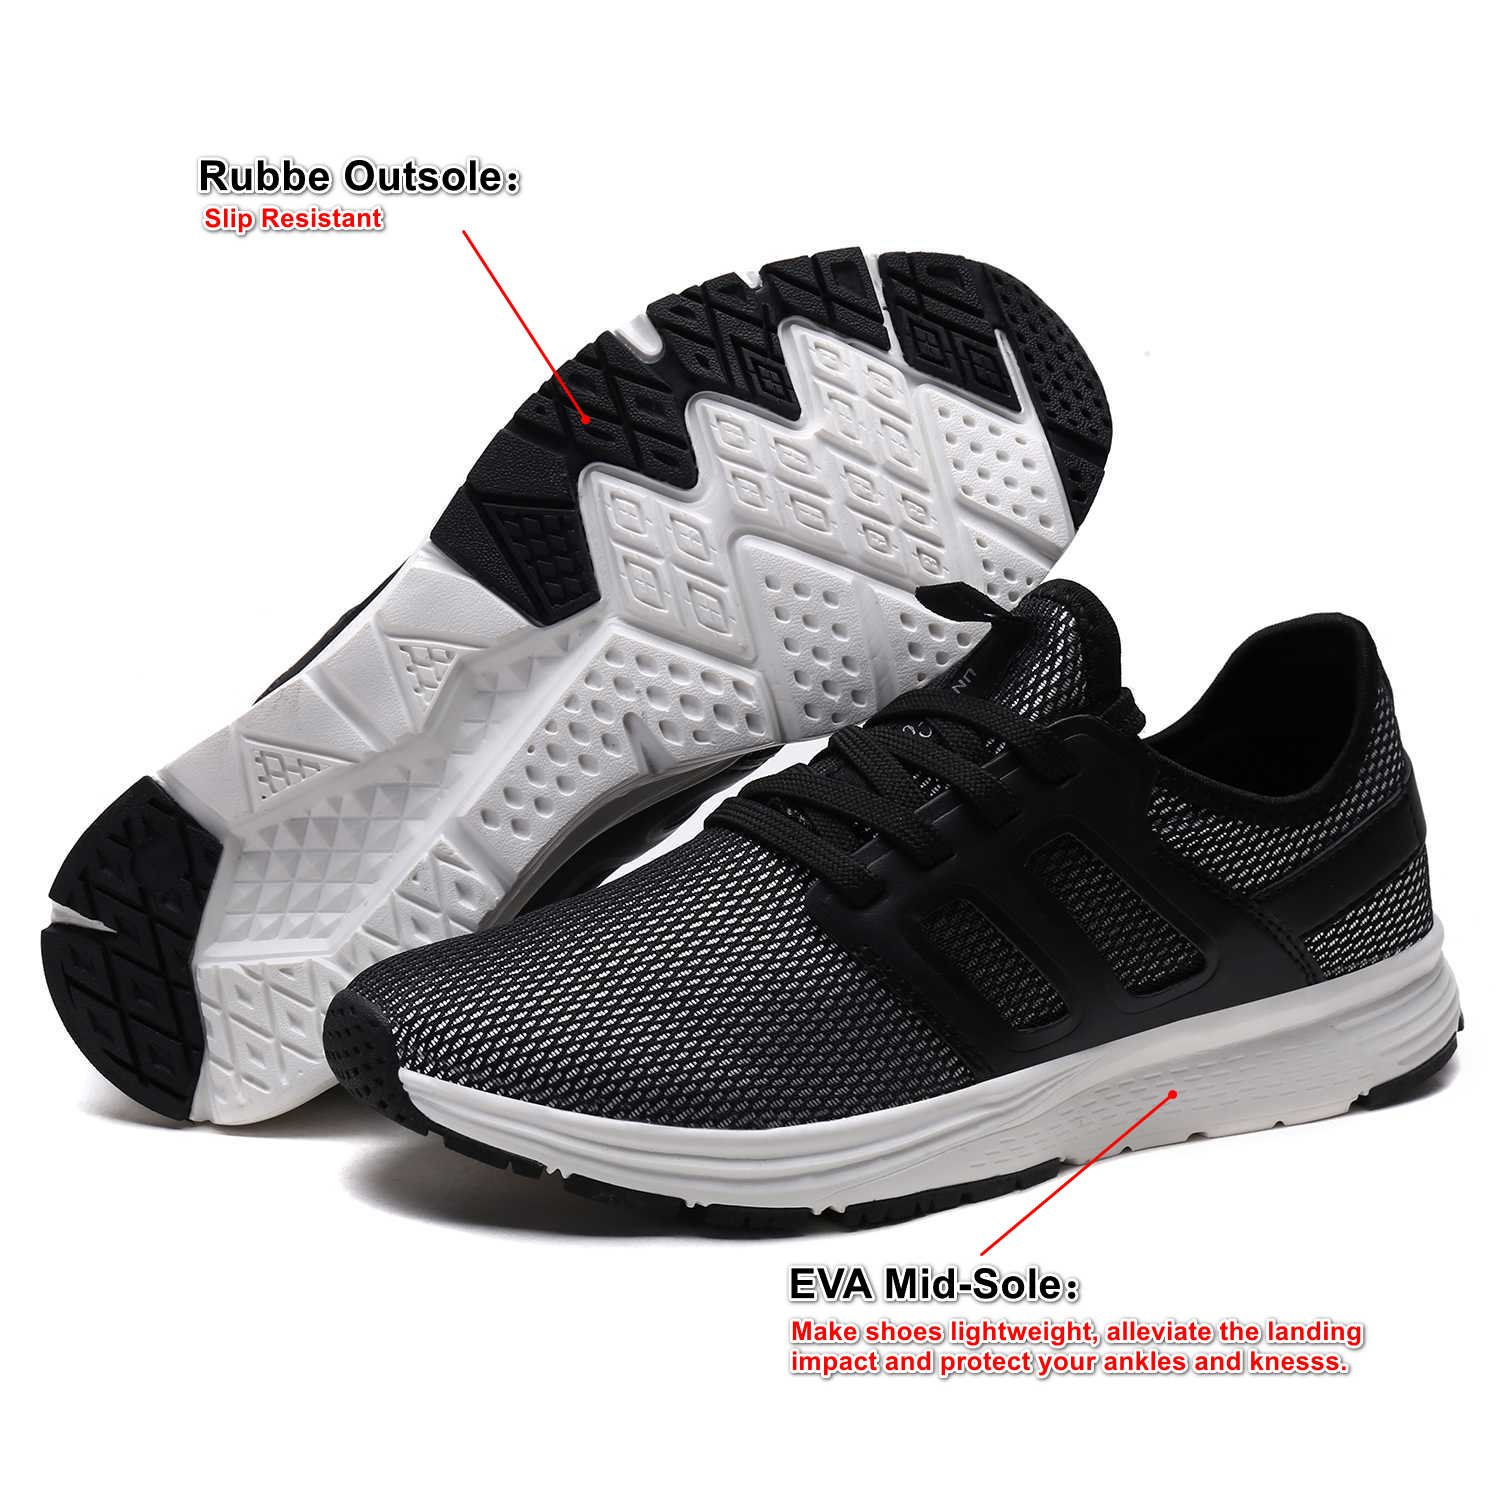 UNMK FUN Women\'s Fashion Lightweight Sneakers Breathable Mesh Soft Sole Casual Athletic Running Walking Shoes (8, Black)